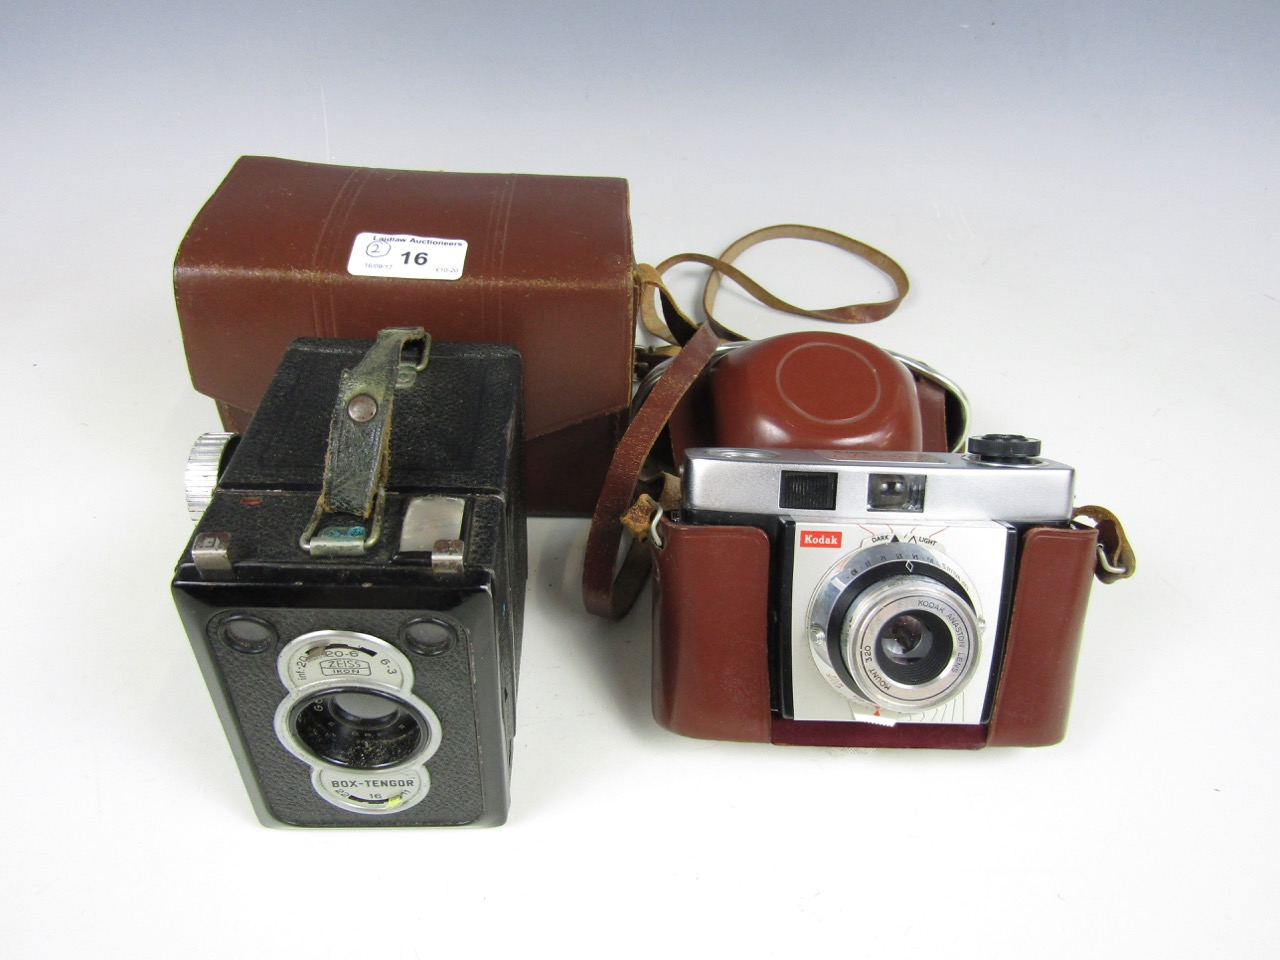 Lot 16 - A cased Zeiss Ikon Bot Tenger camera together with a cased Kodak Colorsnap 35 camera model 2